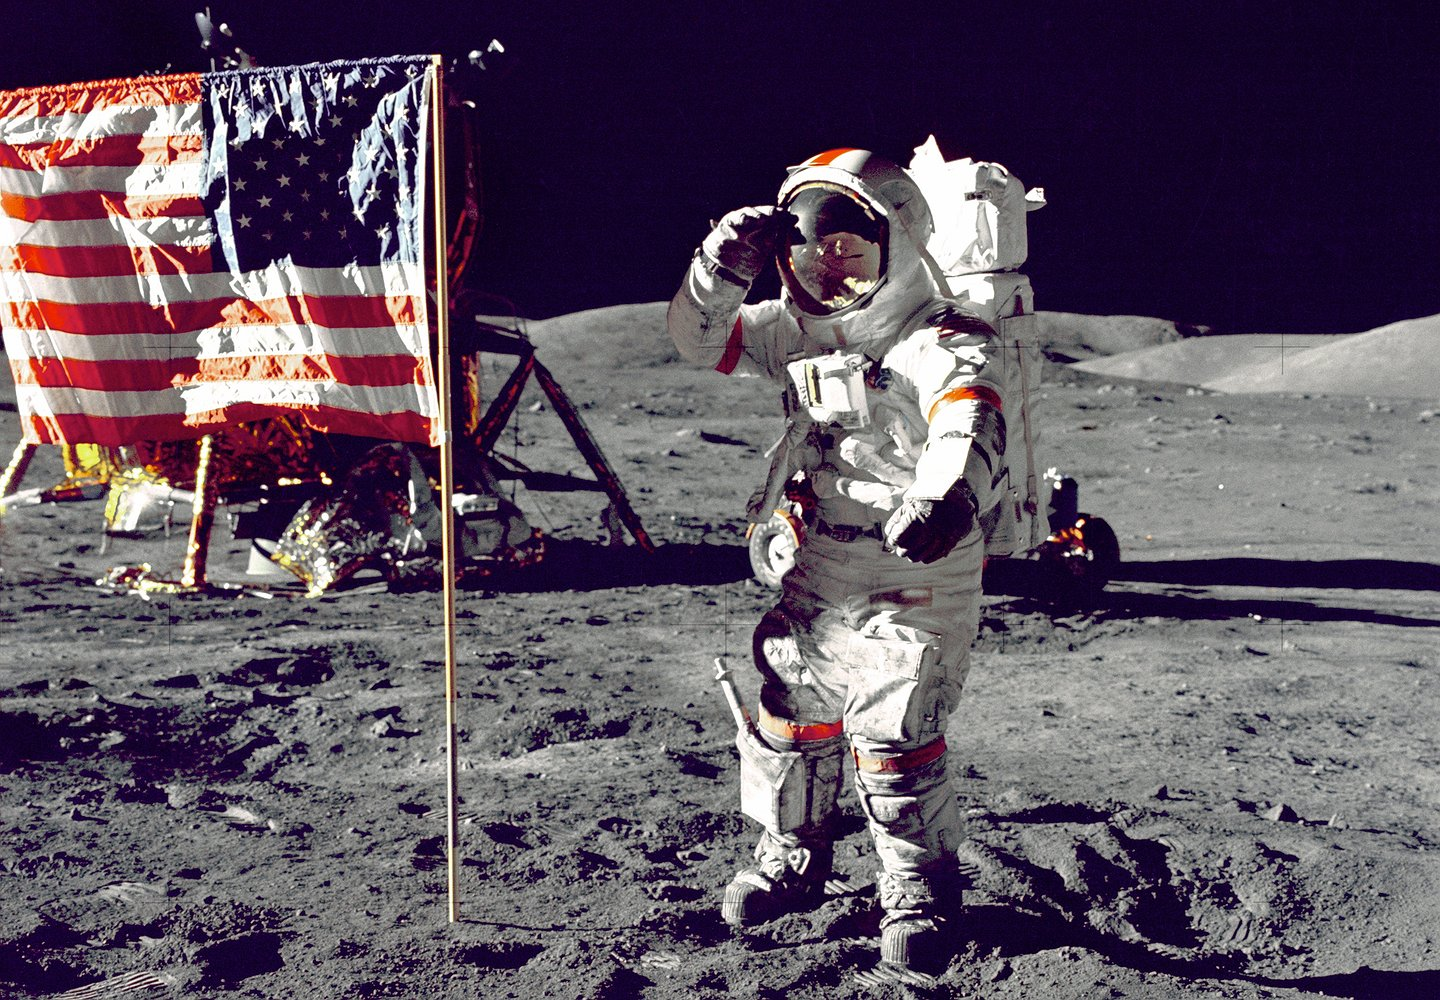 HISTORY'S Moment in Media: Neil Armstrong, Buzz Aldrin Walk on the Moon